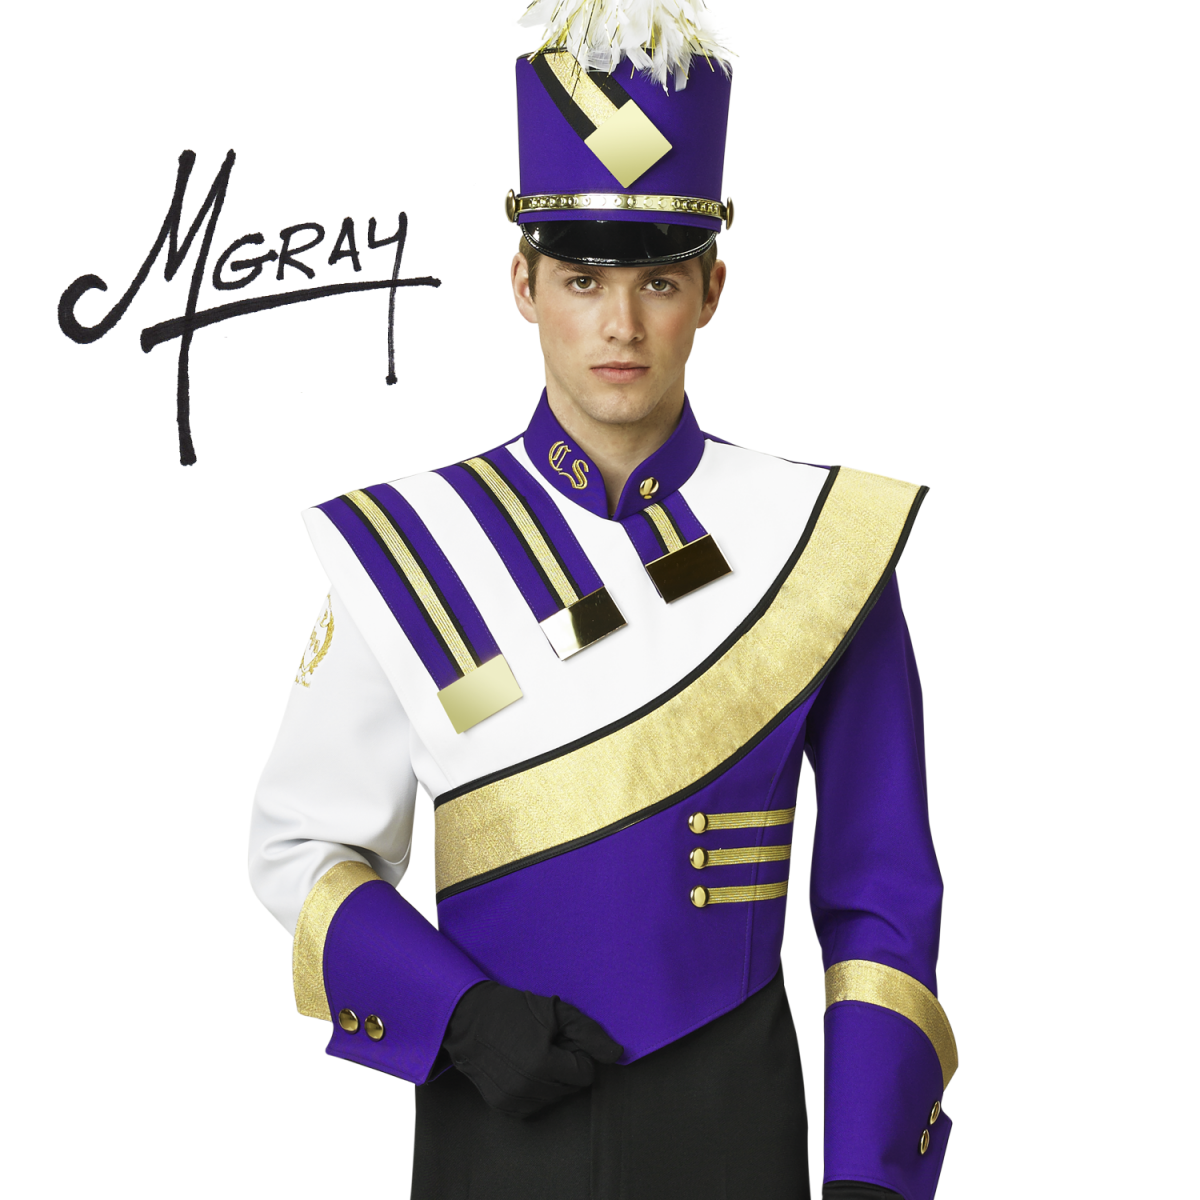 Custom Uniform - Made-to-Order Uniforms - Marching Band - DeMoulin